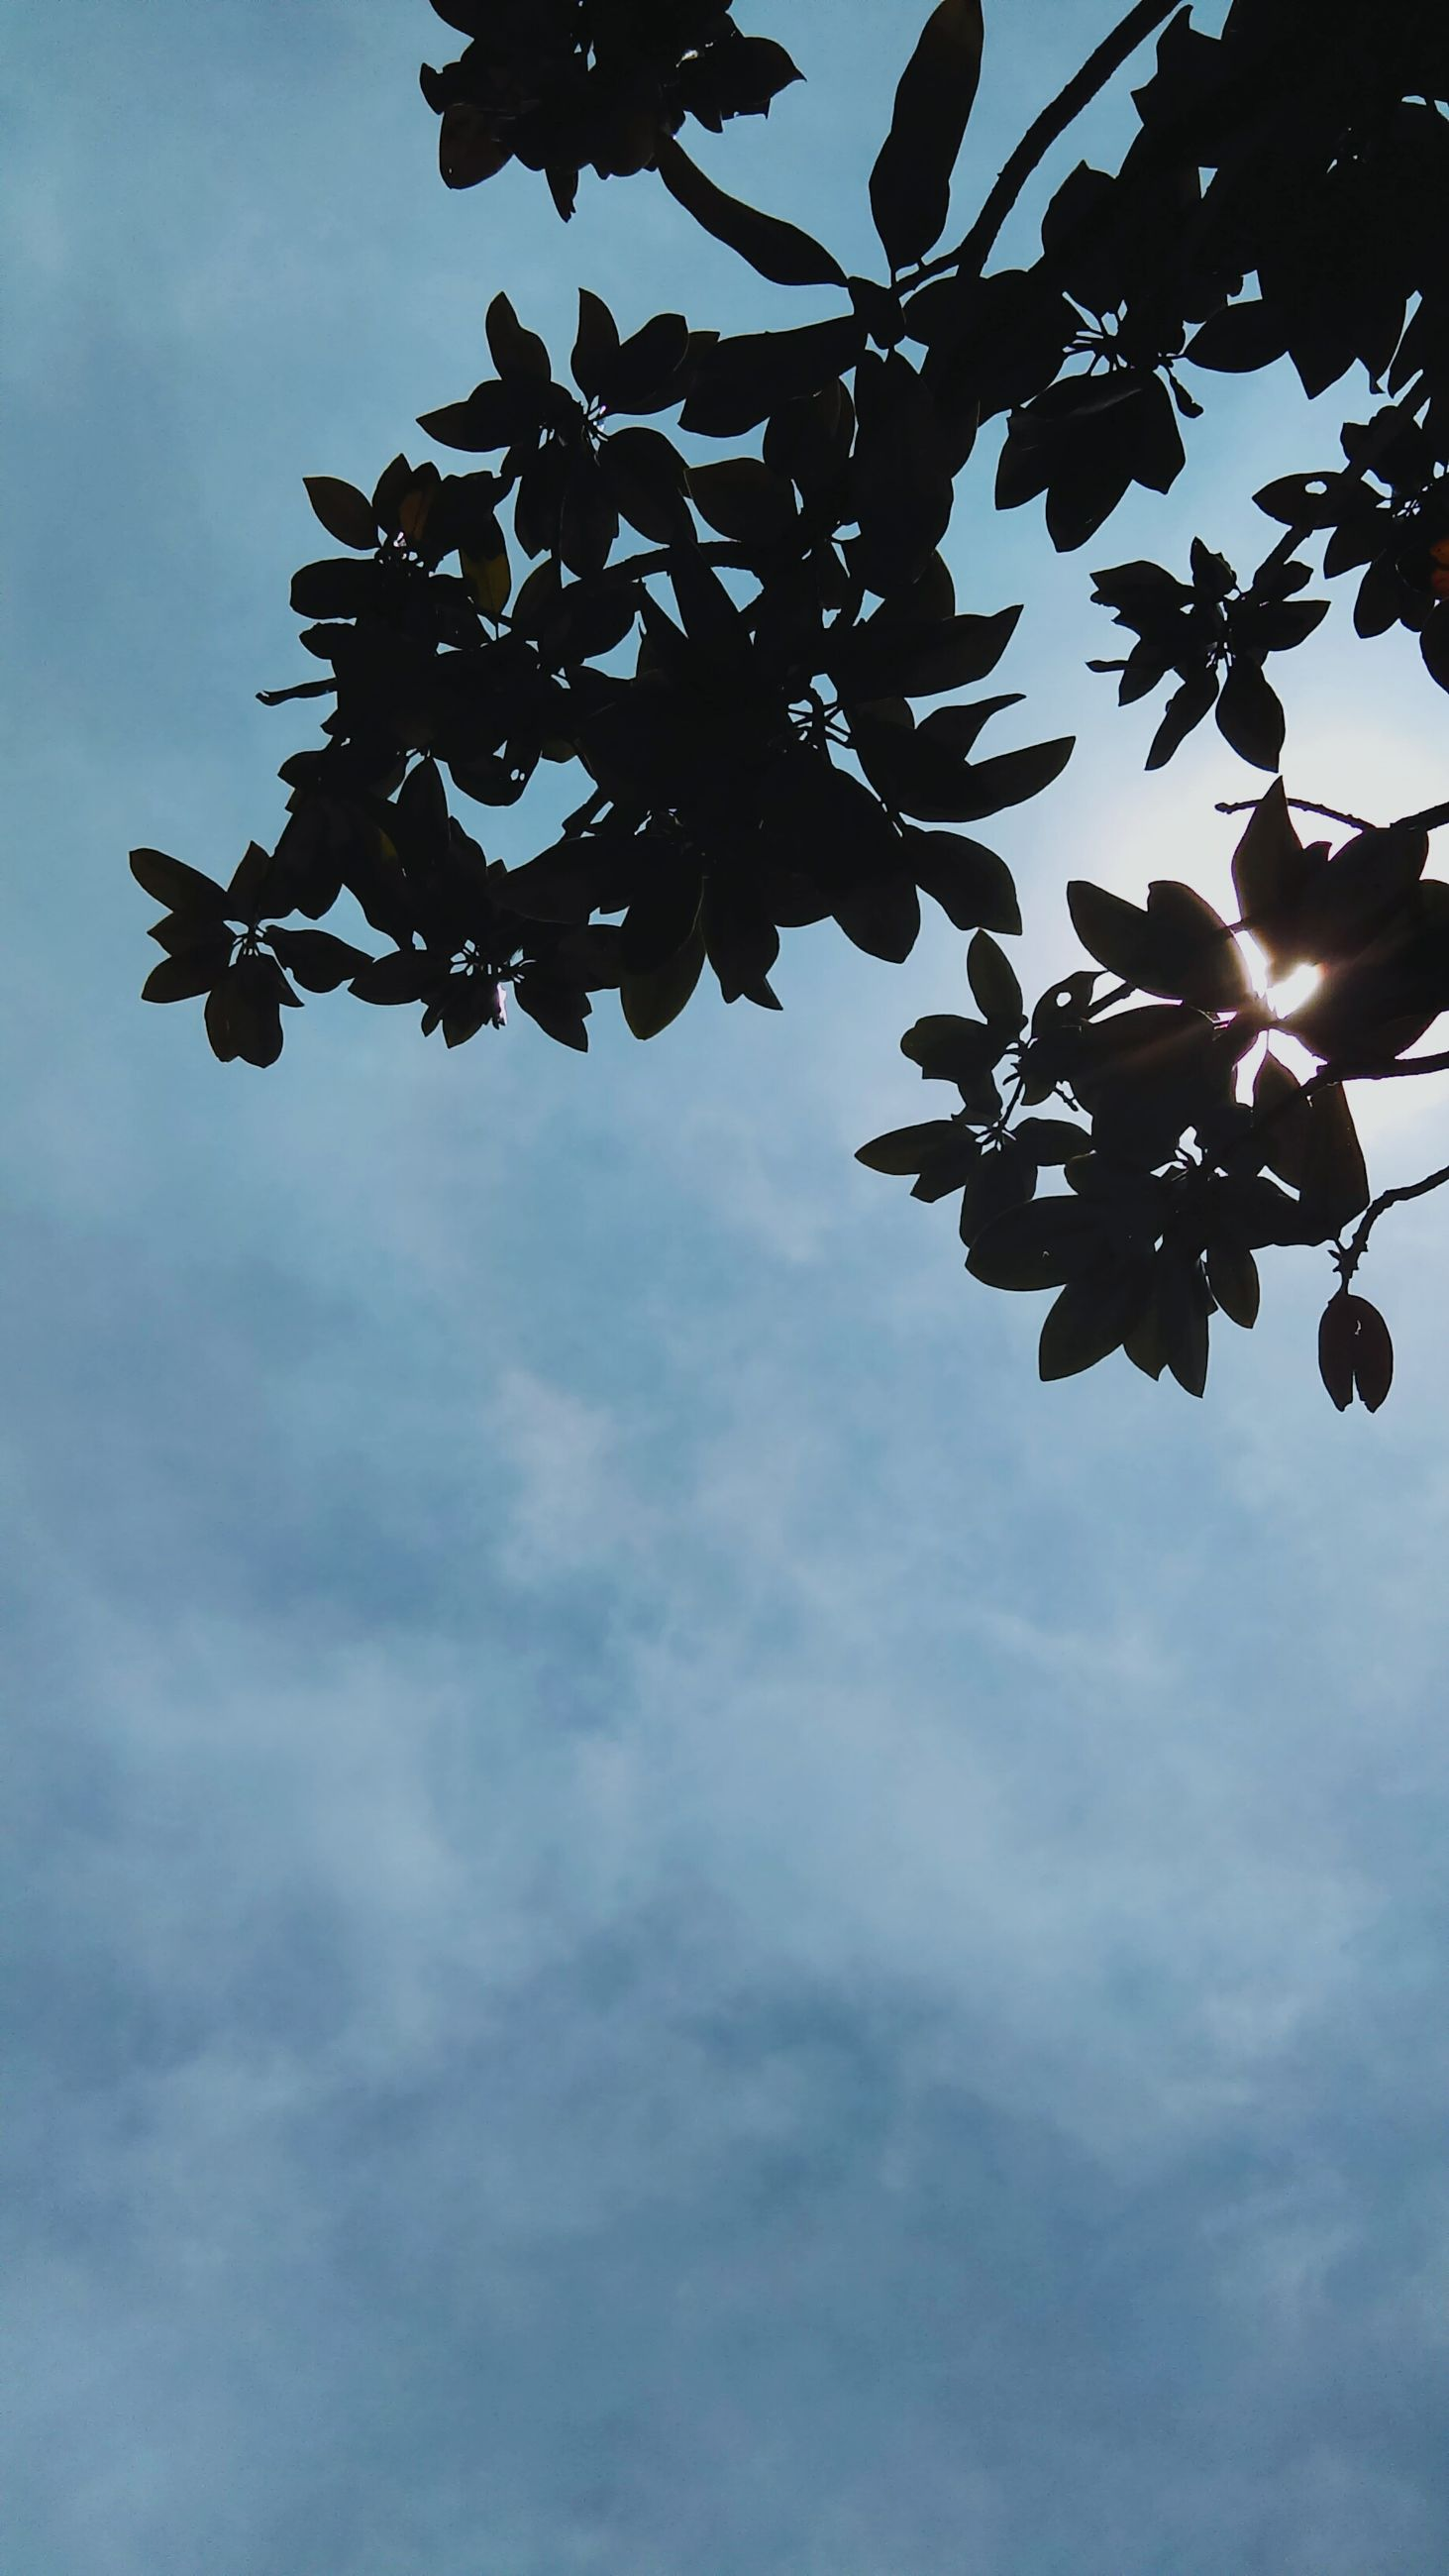 low angle view, sky, cloud - sky, branch, cloudy, tree, nature, cloud, leaf, growth, day, no people, outdoors, beauty in nature, close-up, hanging, silhouette, tranquility, dusk, focus on foreground